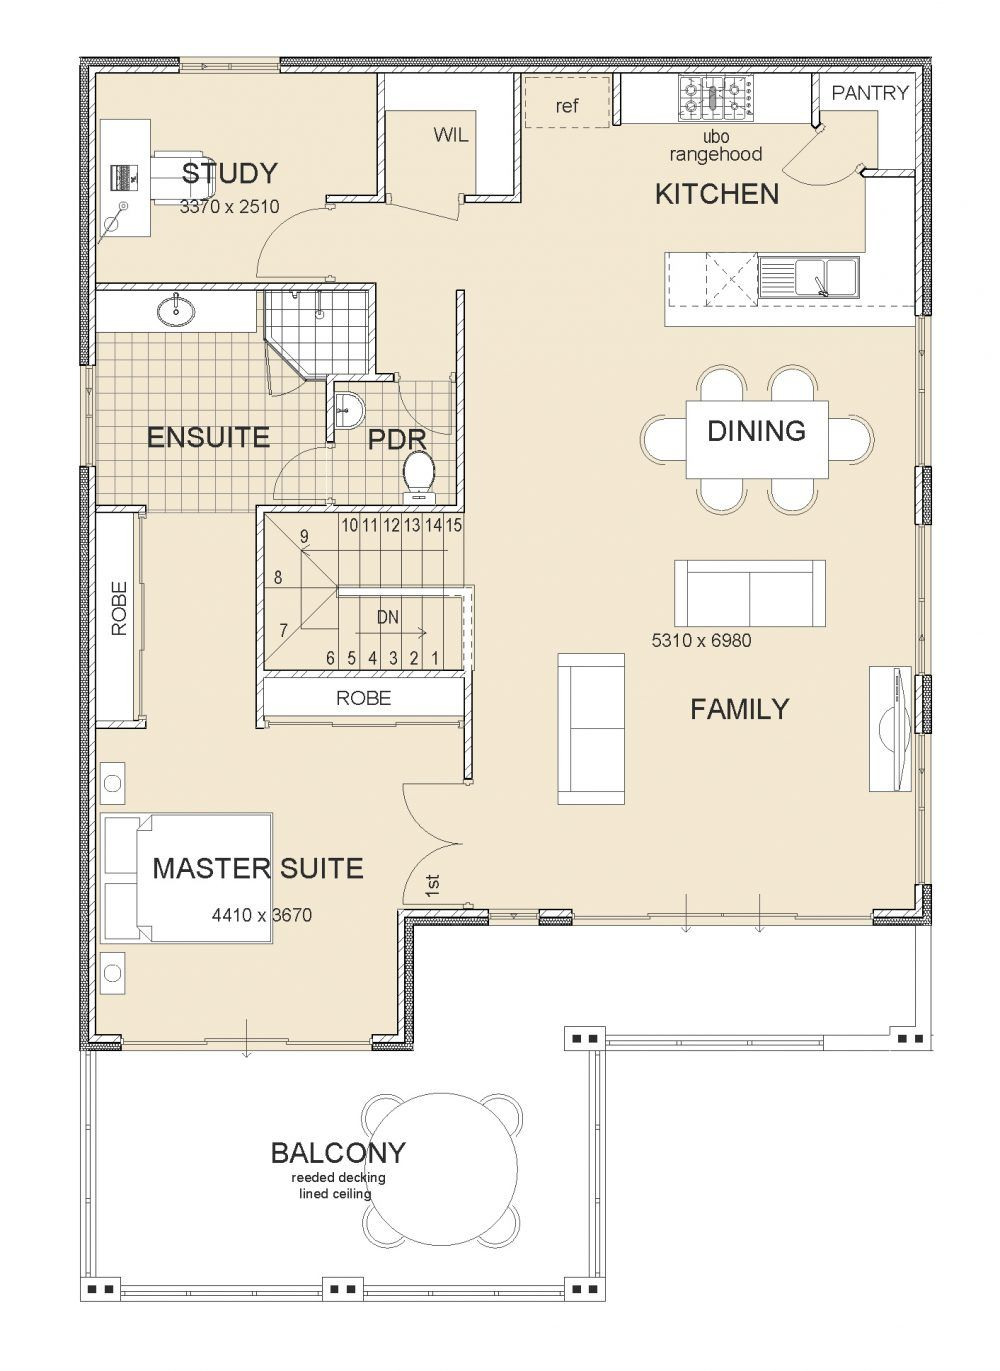 San remo series upstairs living house plan also in plans rh pinterest